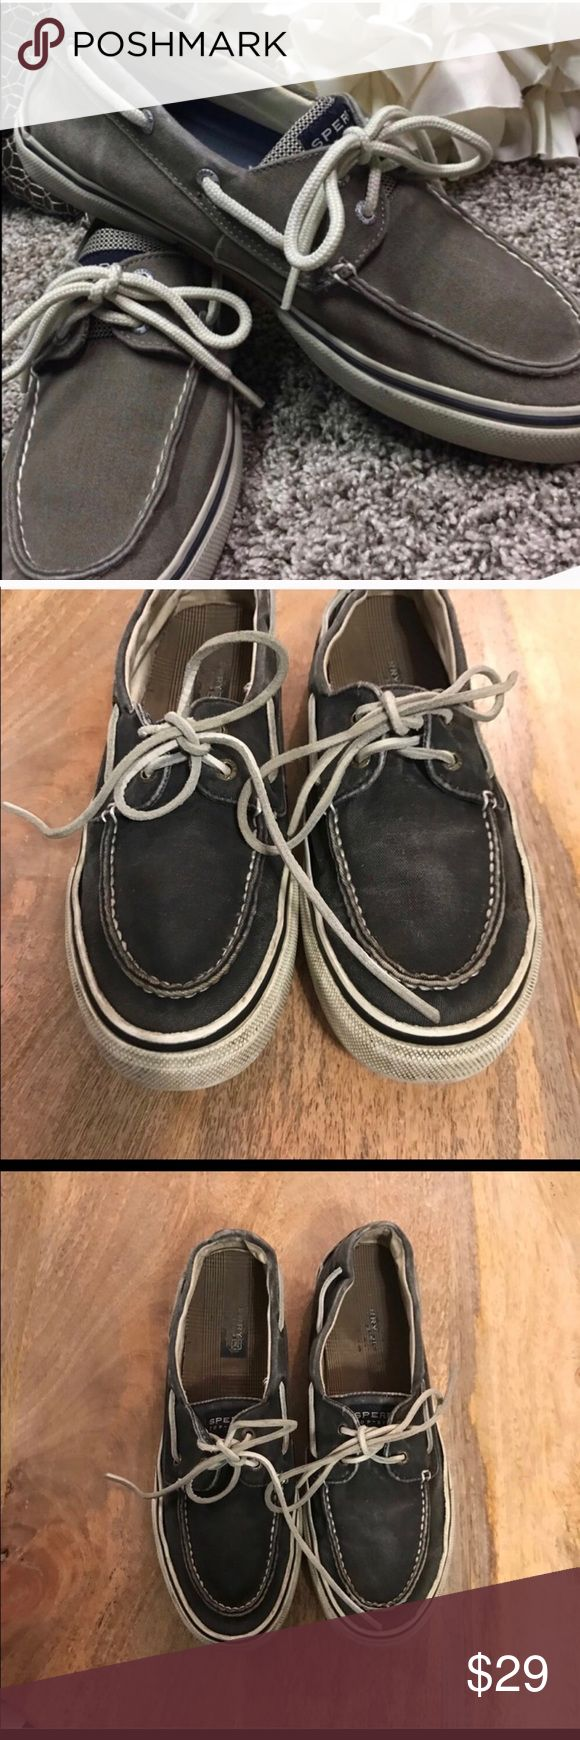 Sperry Top-Sider Men's Boat Shoes✔️Navy✔️10.5 Sperry Top-Sider Men's Boat Shoes✔️10.5 ✔️light navy with white laces ✔️preloved but still great condition. ✔️ Sperry Top-Sider Shoes Boat Shoes